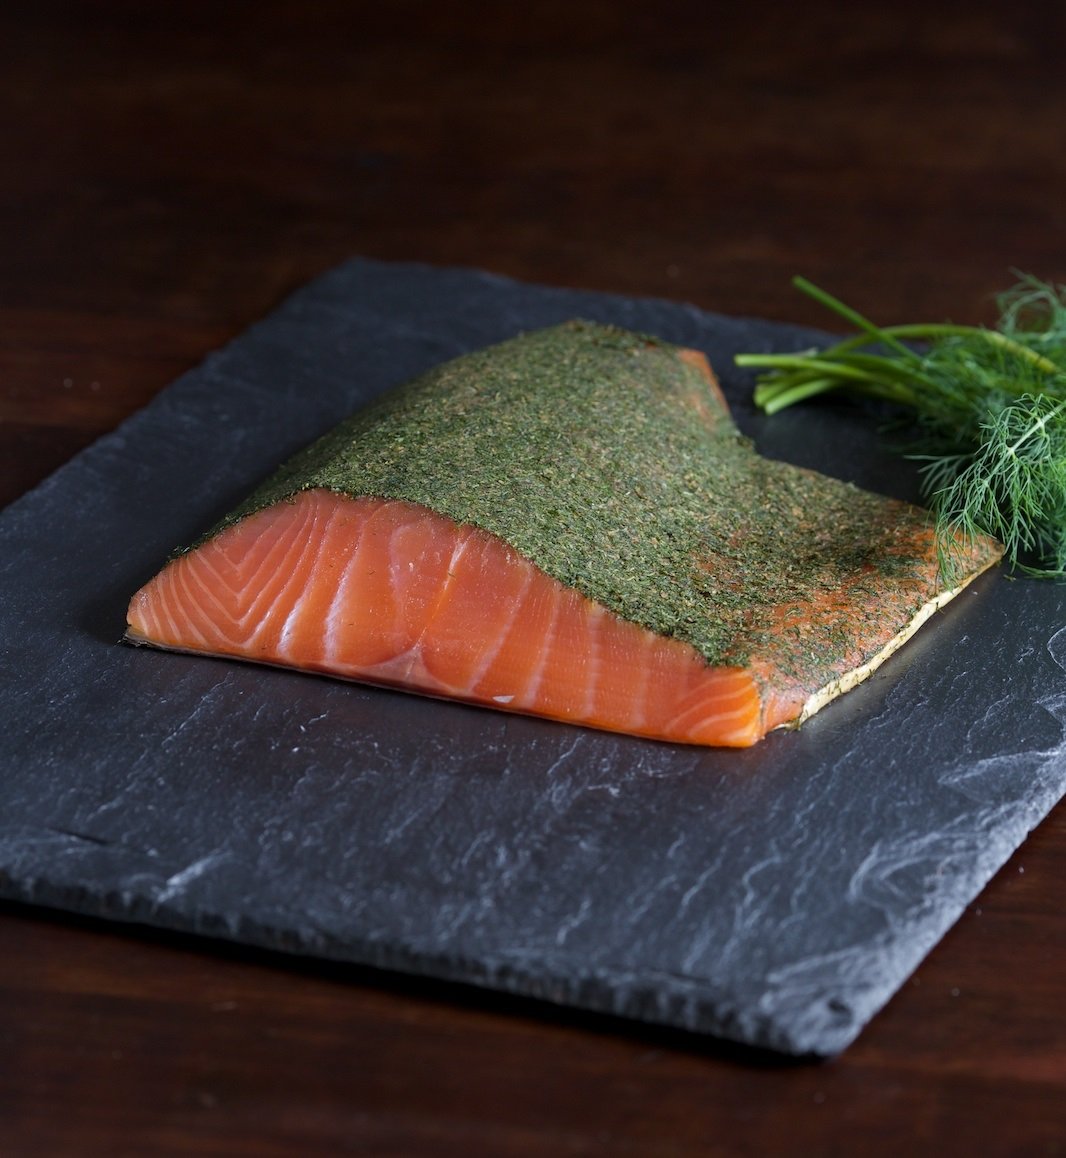 Gravlax - Gravlax is a Scandinavian cured salmon. We make ours with aged scotch whiskey, sugar, salt, dill and spices. It's a sweet, succulent salmon that is a welcome addition to an appetizer plate.